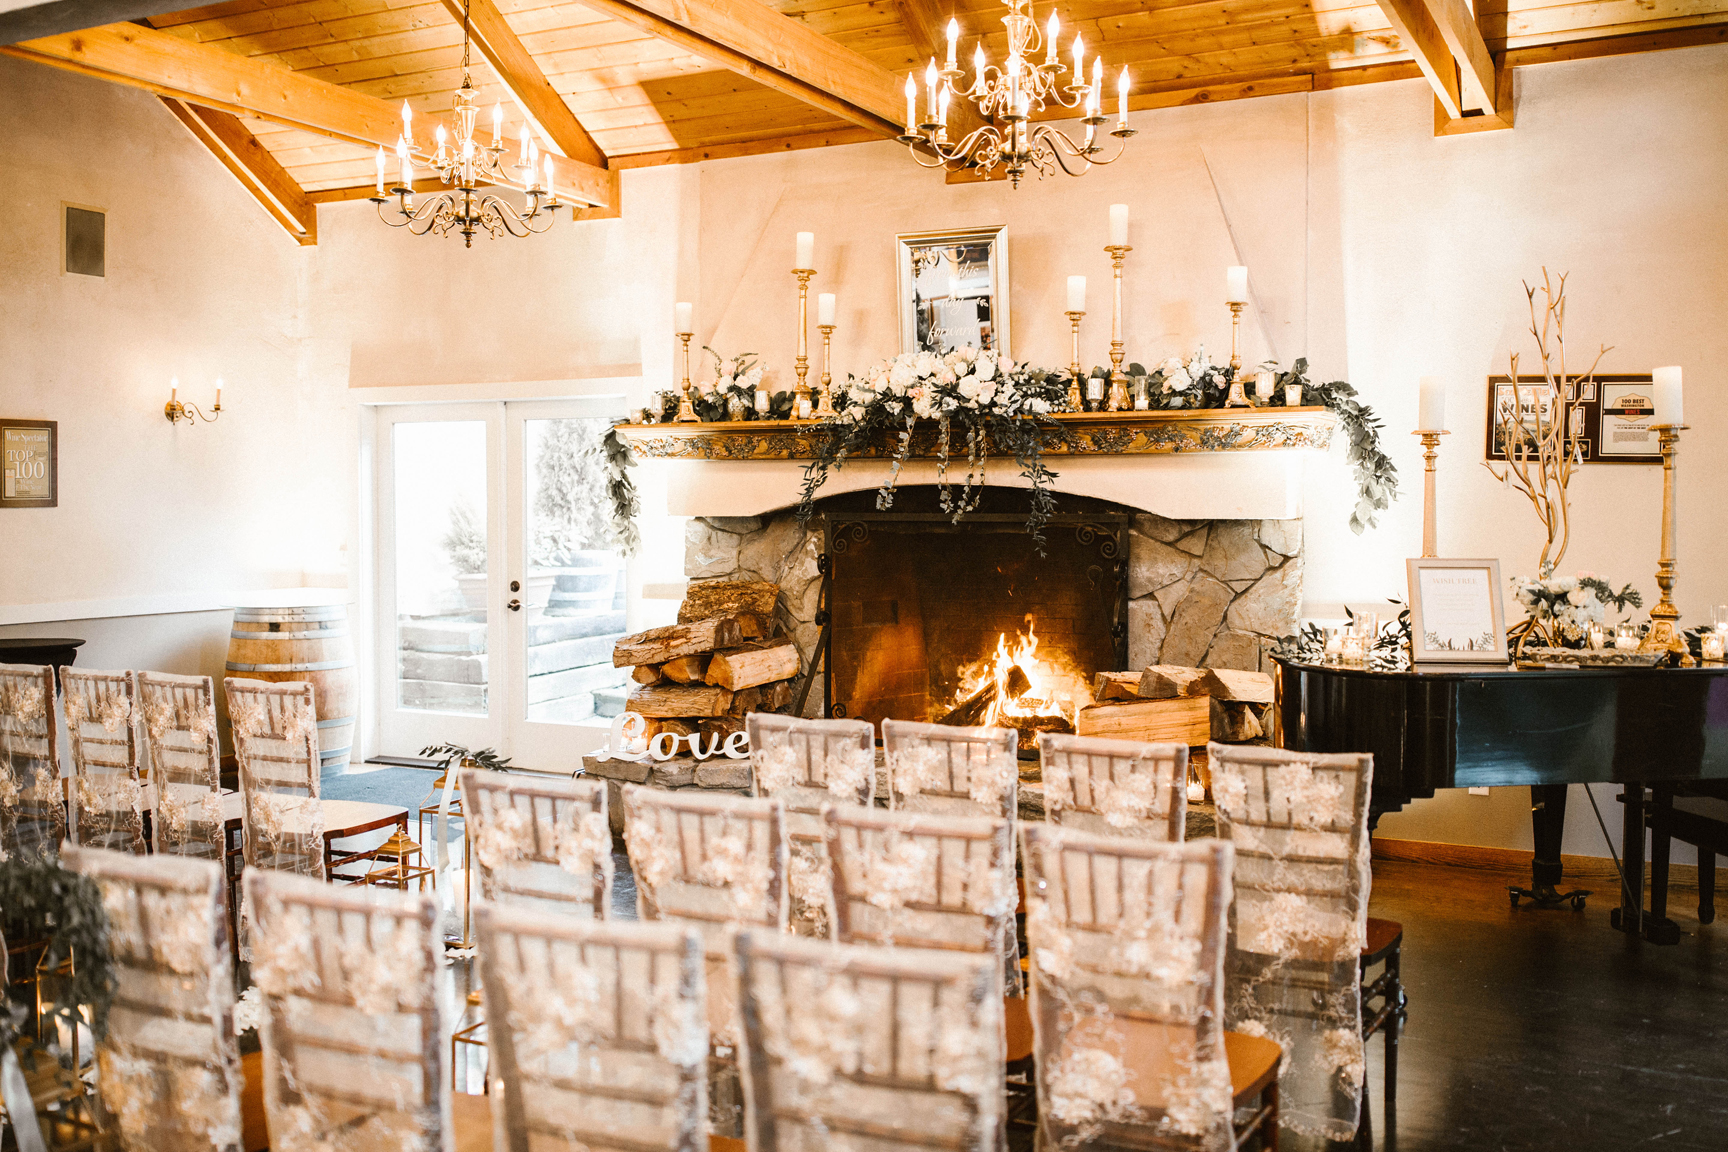 DeLille+Cellars_The+Chateau_Woodinville_2017_Weddings+In+Woodinville97.jpg